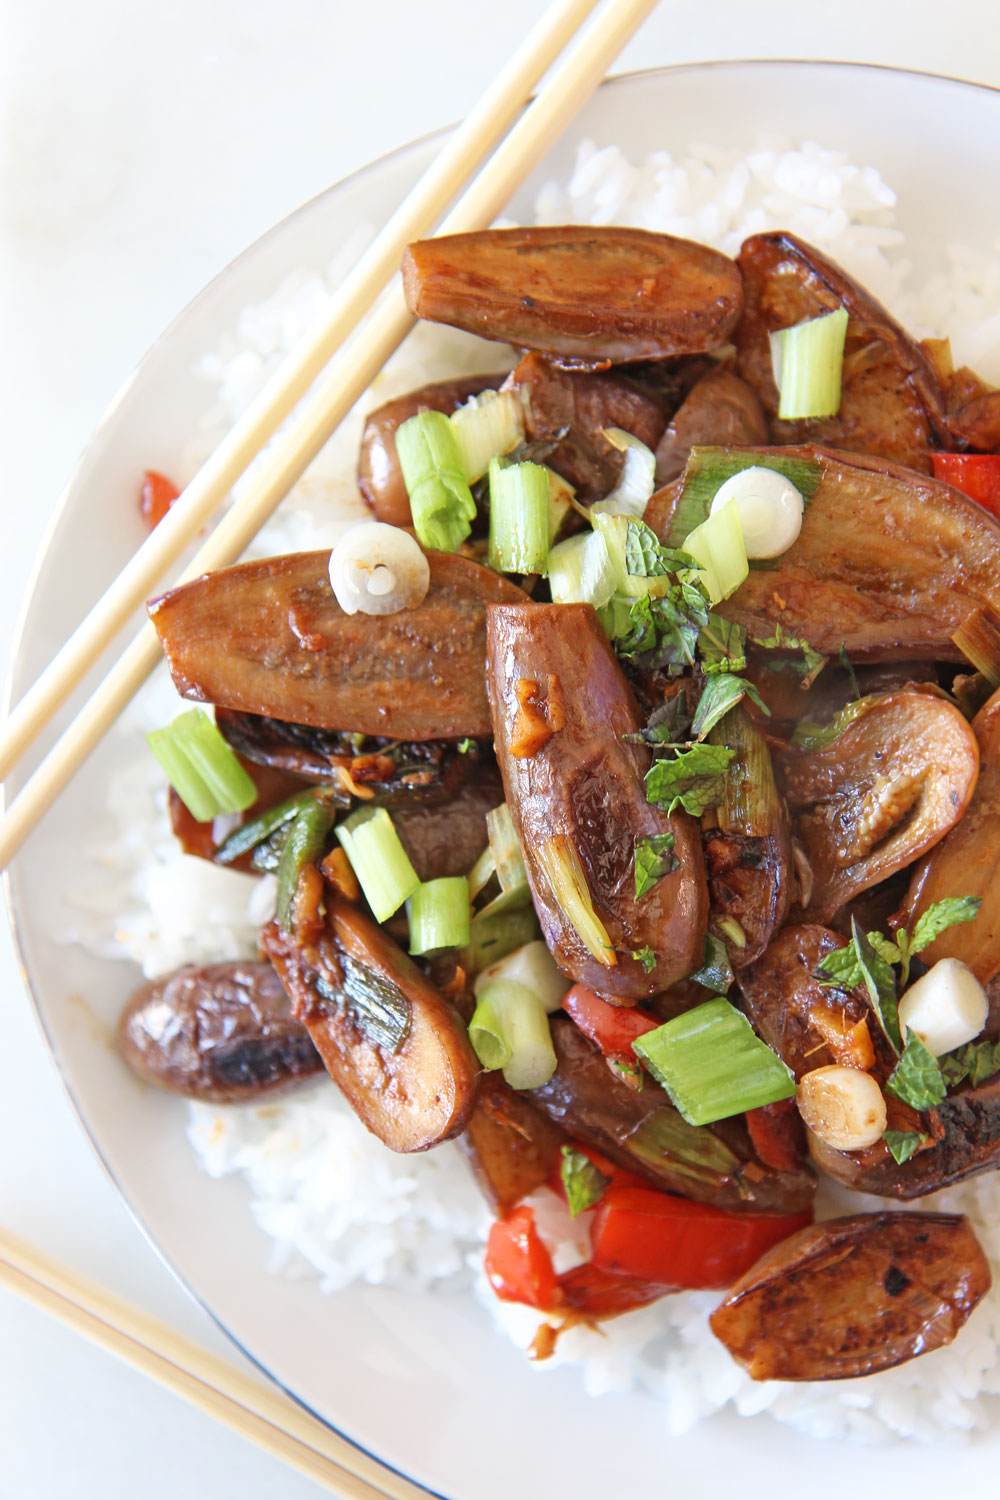 Quick Stir Fry Garlic Eggplant